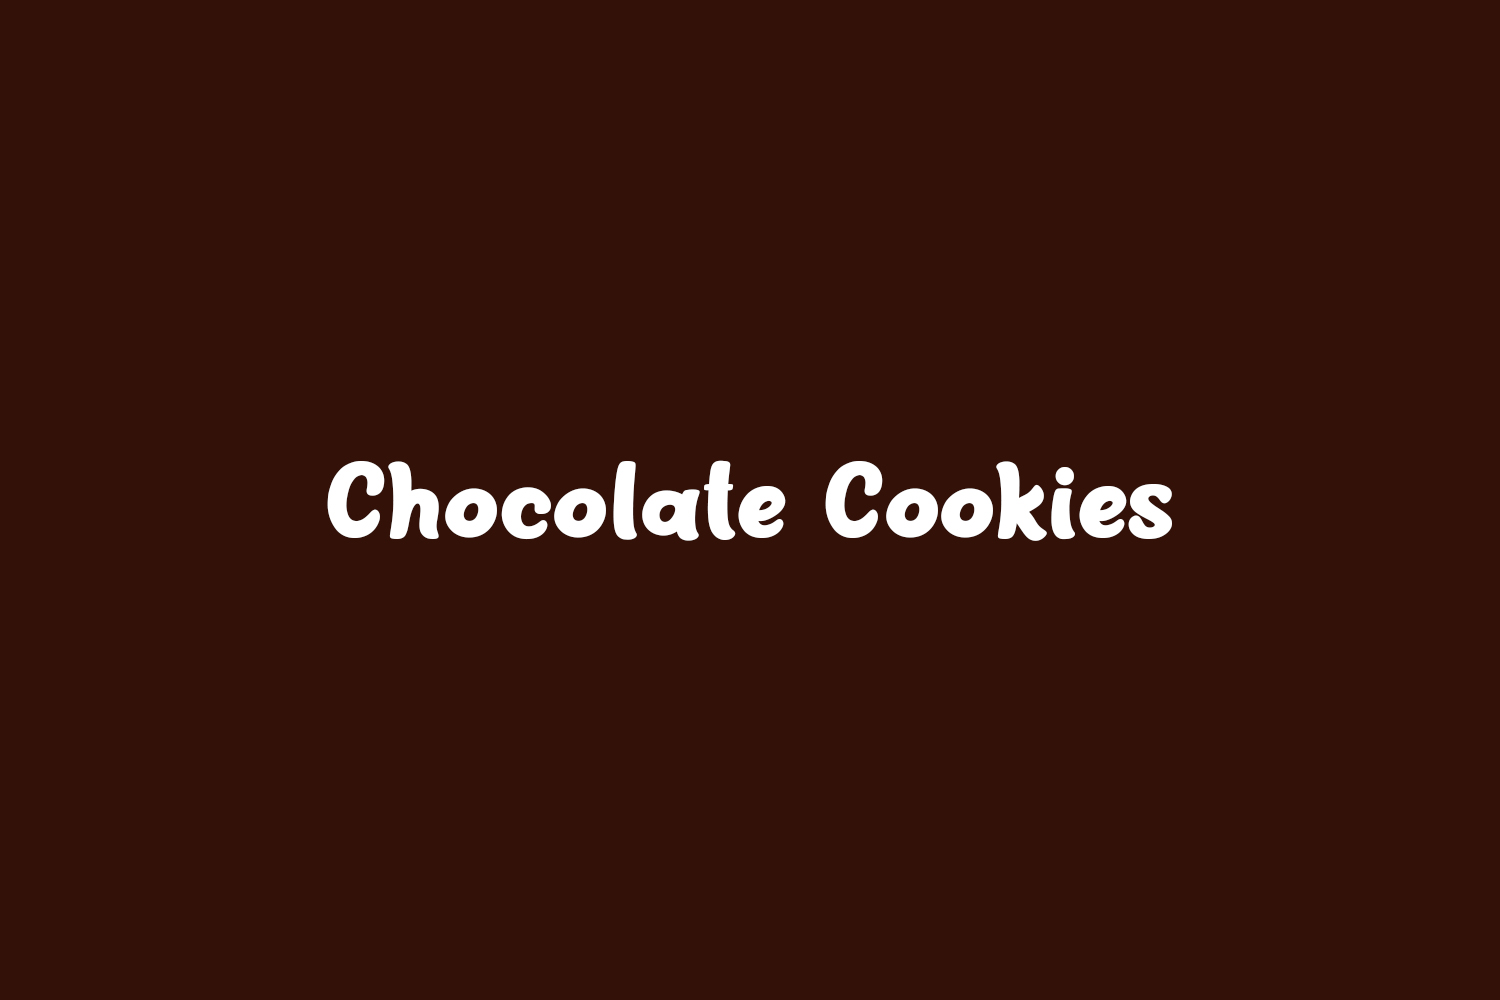 Chocolate Cookies Free Font